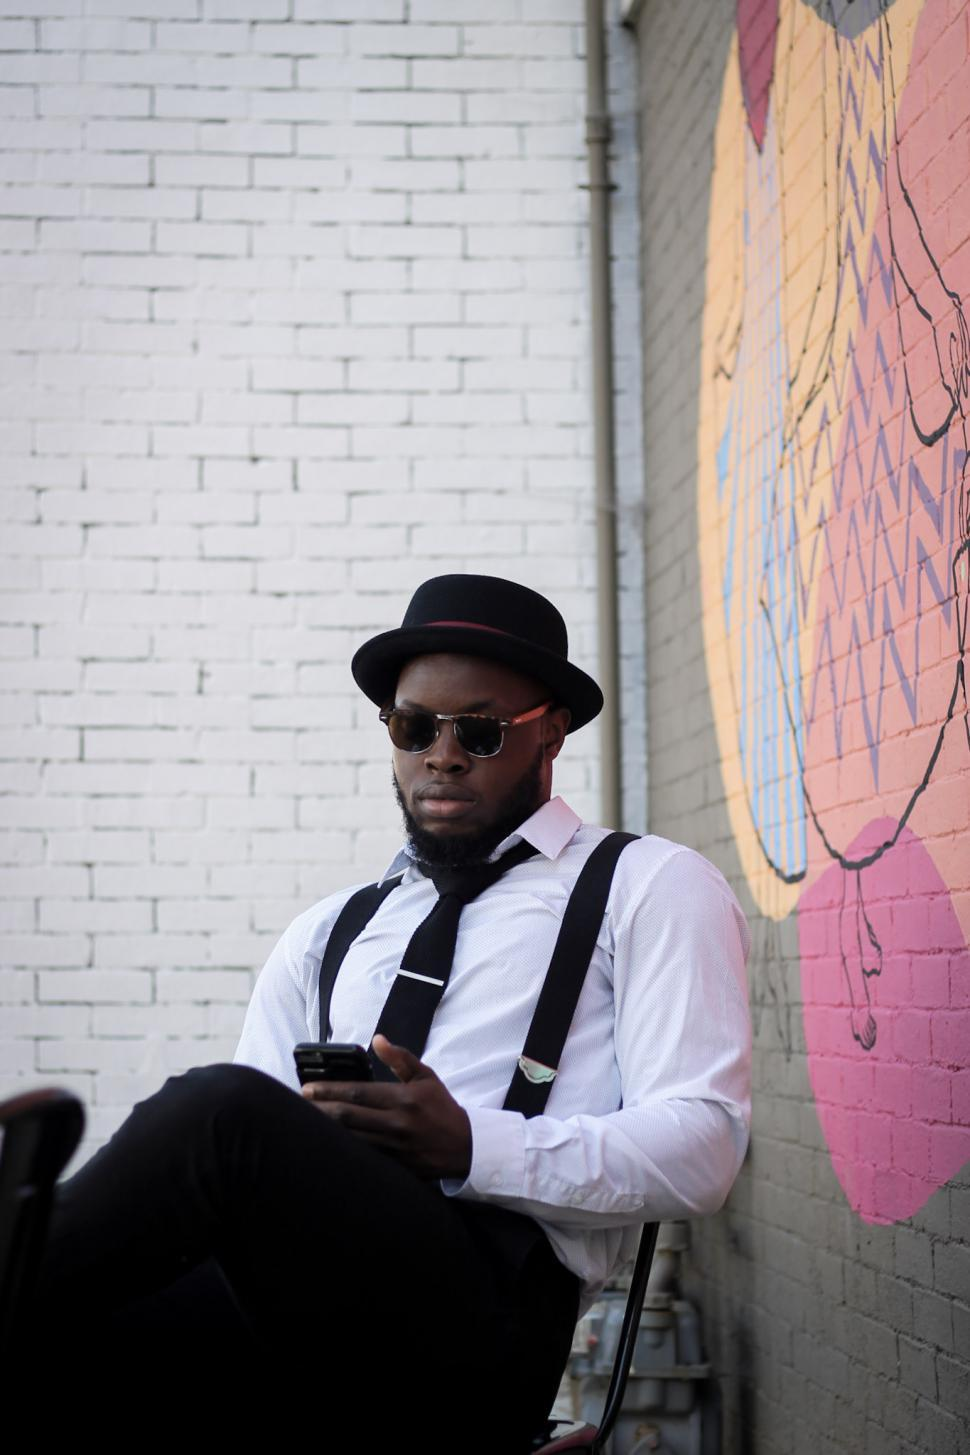 Download Free Stock Photo of Young Man wearing suspenders and hat using cell phone against graffiti wall